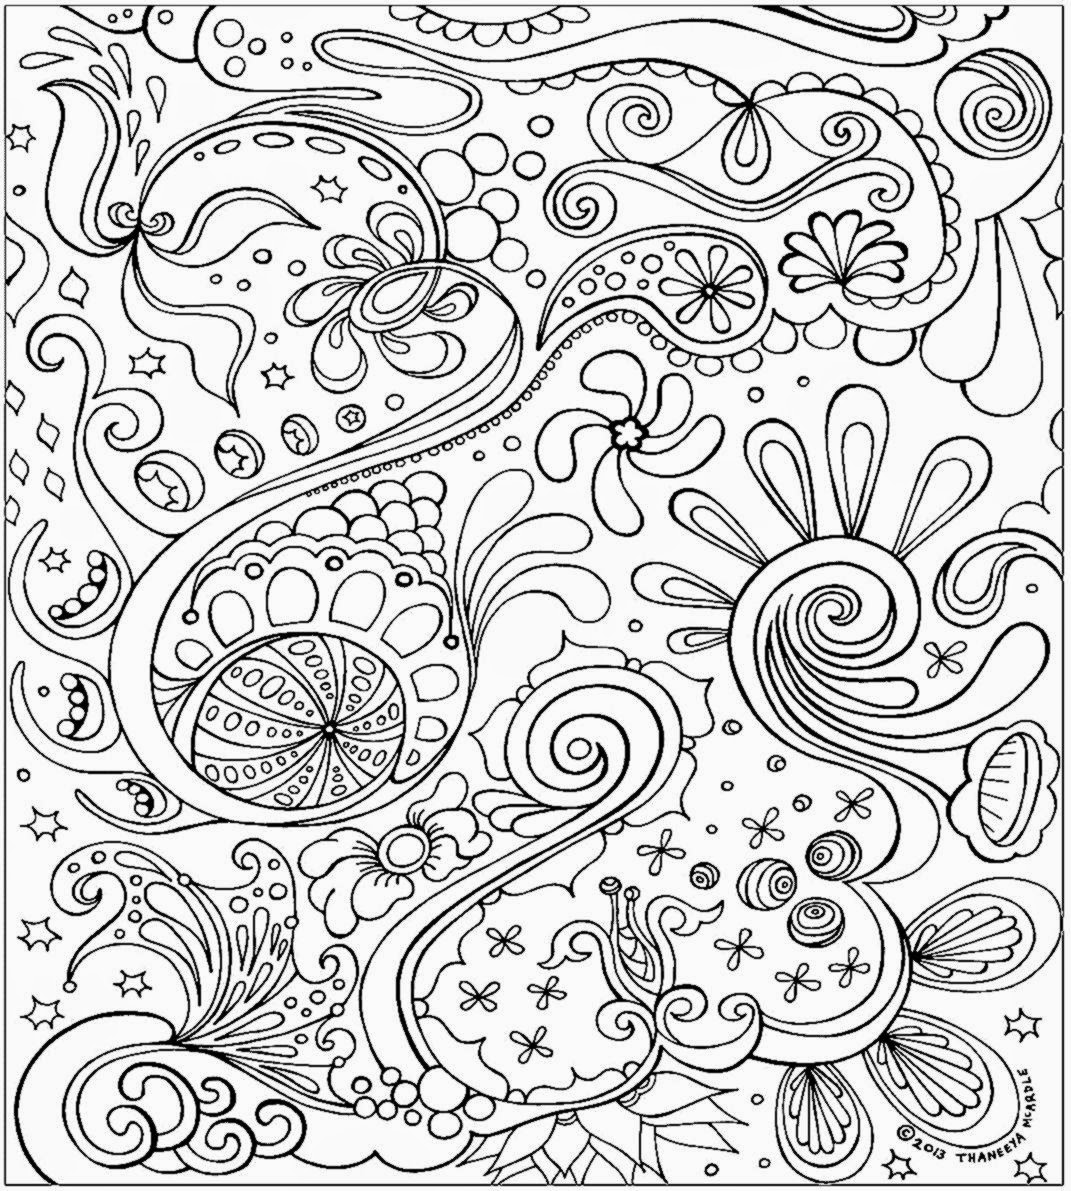 Coloring Sheets For Adults | Free Coloring Sheet